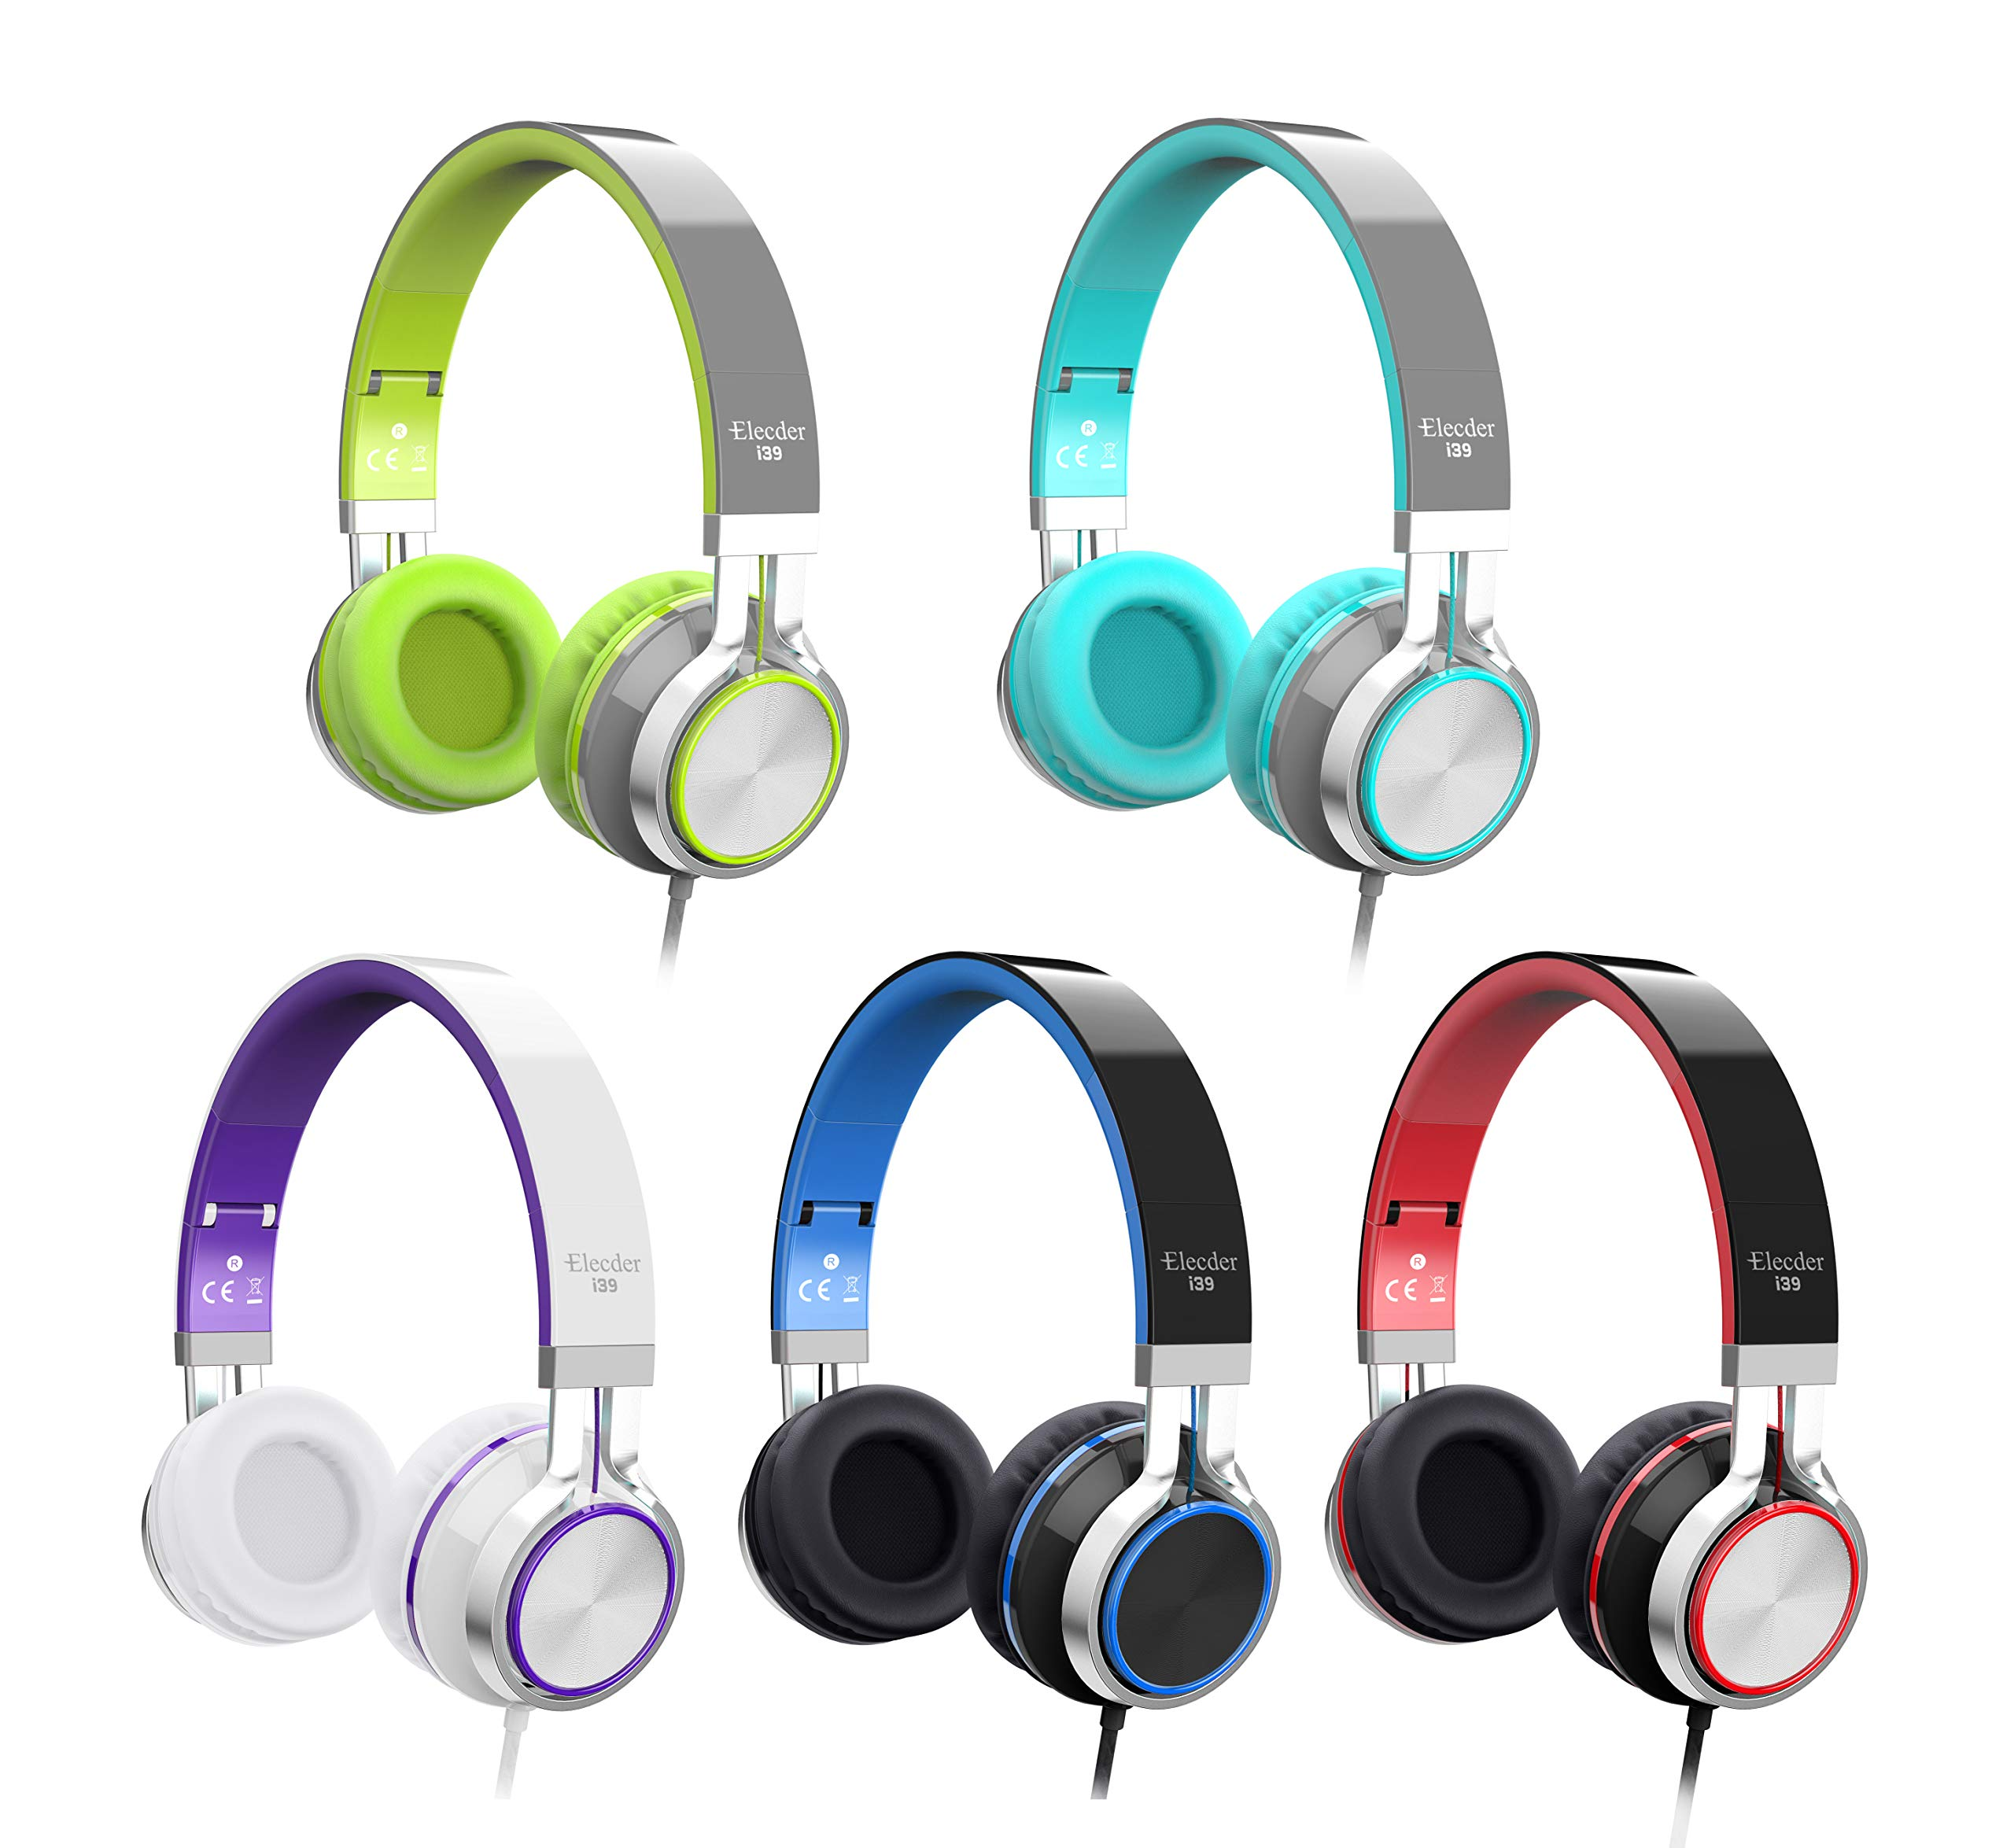 Elecder i39 Headphones with Microphone Kids Children Girls Boys Teens Foldable Adjustable Wired On Ear Headsets Compatible iPad Cellphones Computer MP3/4 Blue/Black by ELECDER (Image #9)